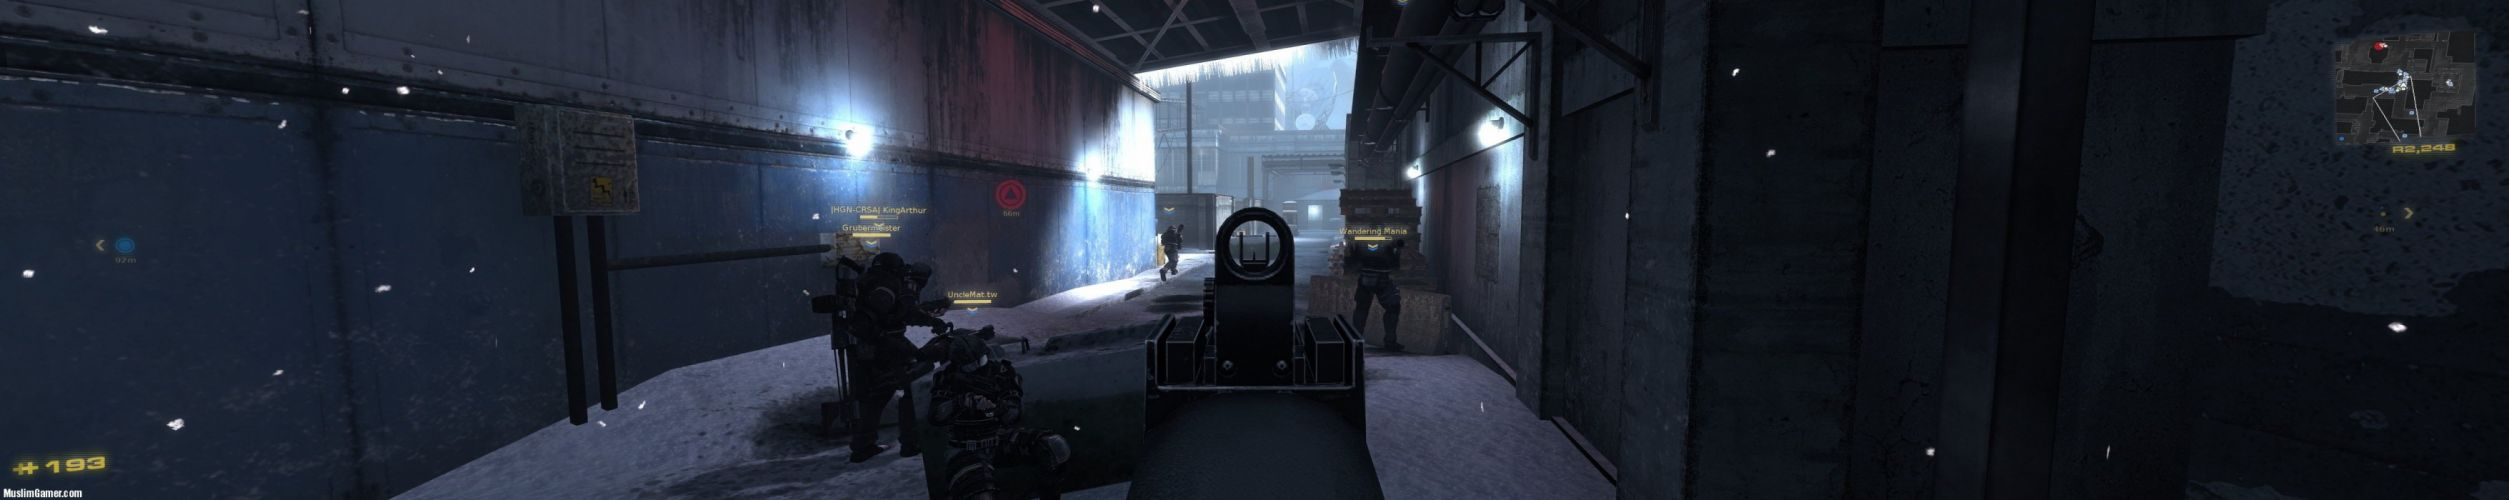 NUCLEAR-DAWN fps shooter sci-fi real-time strategy apocalyptic nuclear dawn (8) wallpaper